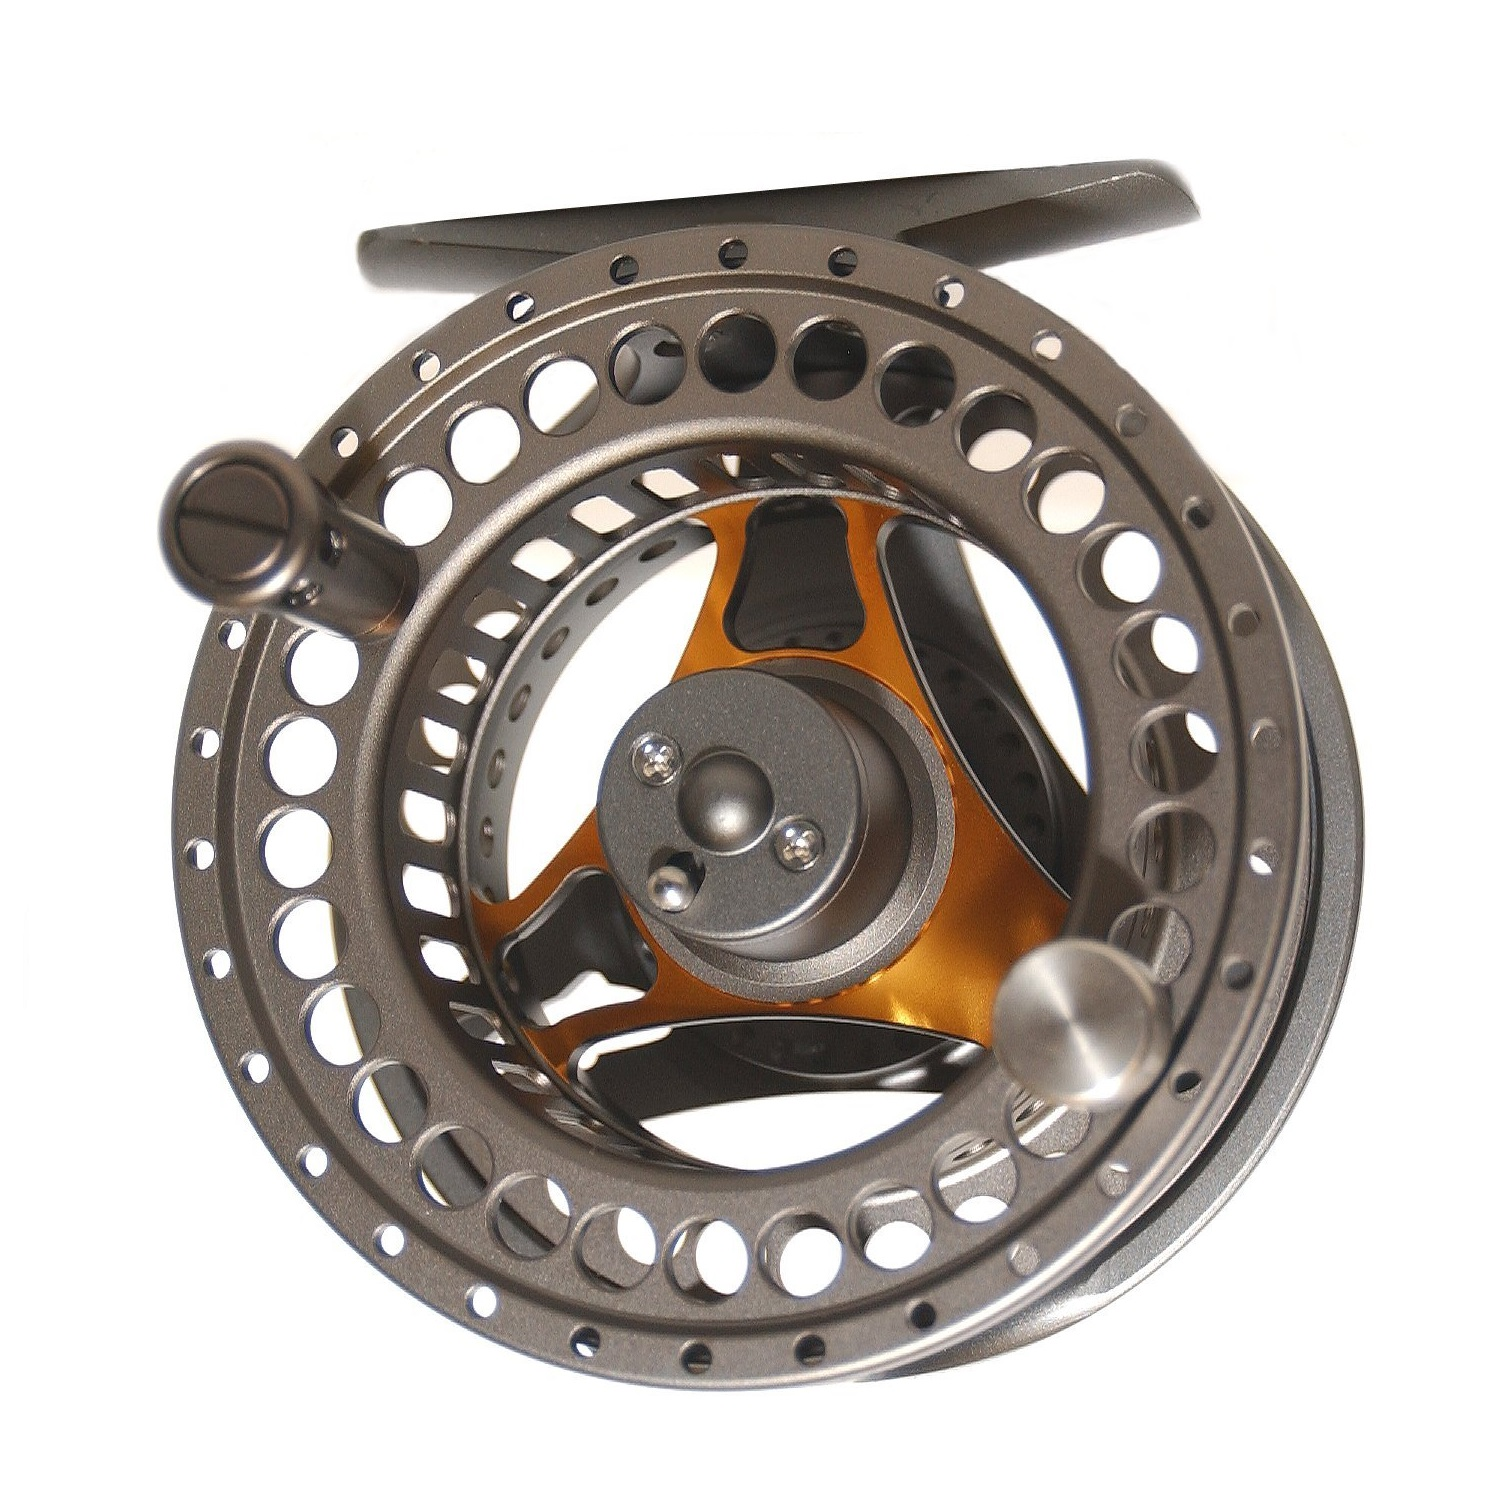 Wright and McGill Dragon Fly Reel WMEDFSLA34